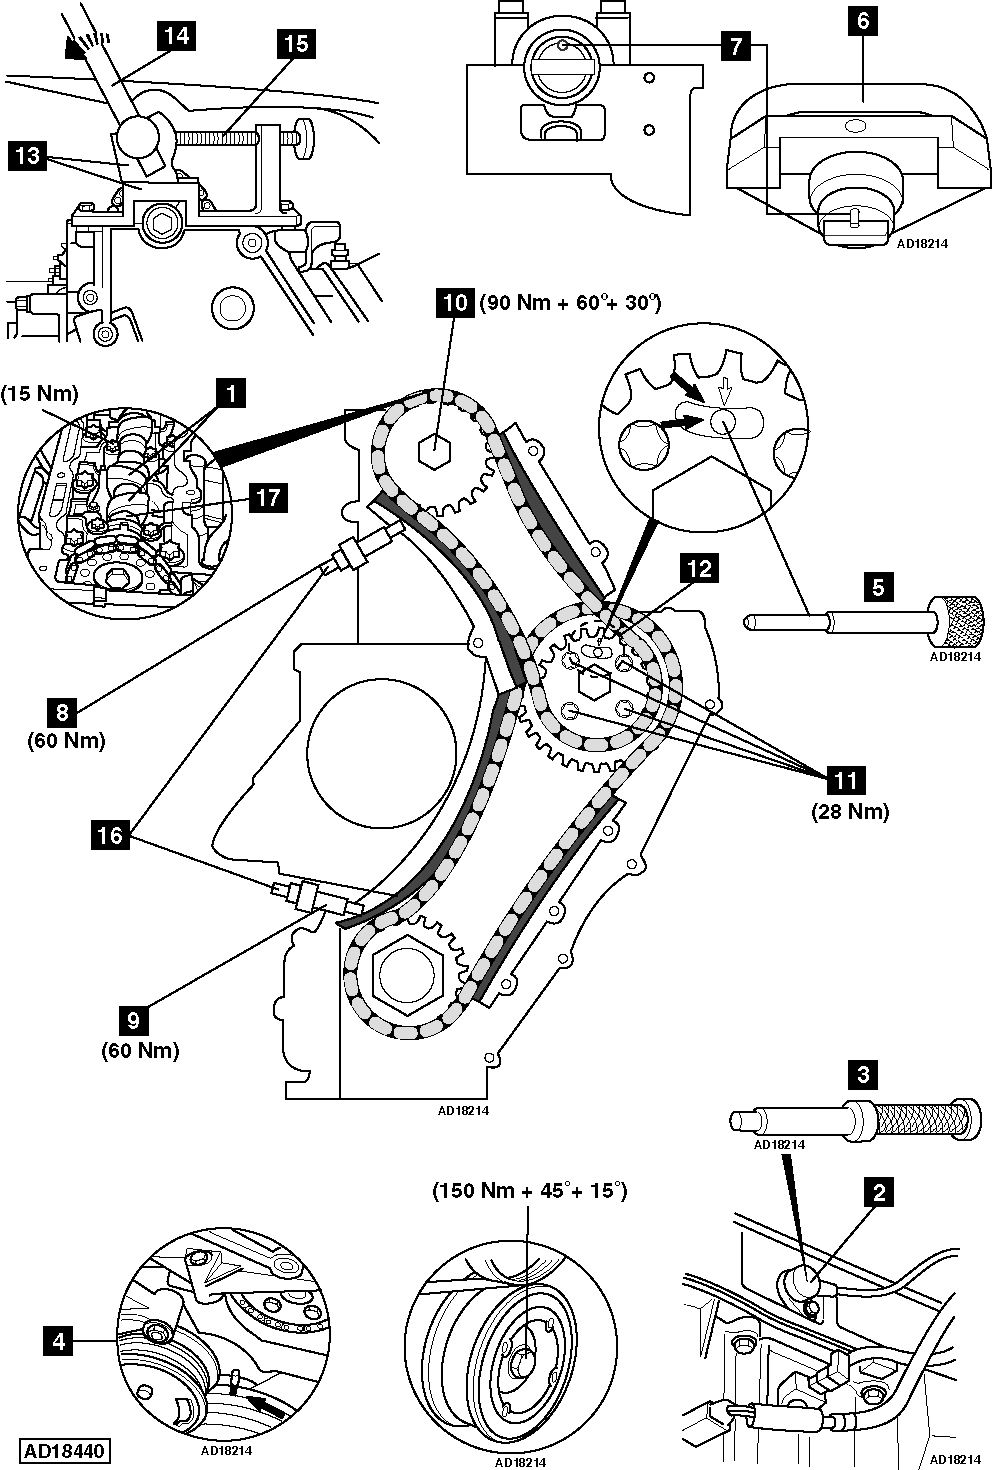 T14994551 Show me timing mark s 2000 jeep grand additionally P 0996b43f80cb162b additionally 2000 Suzuki Grand Vitara Timing Chain Diagram likewise 6pm1c Chrysler Sebring 2 7 Chrysler Sebring 2 7 further Chrysler 2 5 Turbo Engine Diagram. on how to replace timing chain on dodge